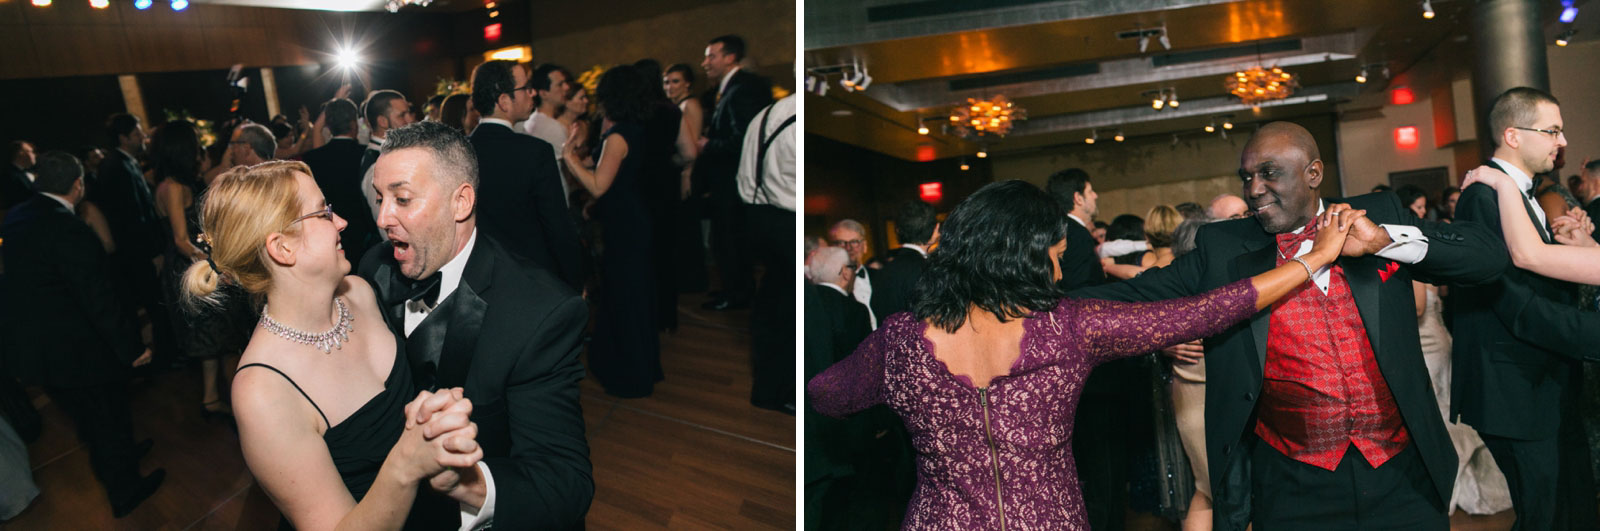 Couples having fun and dancing on the dance floor at modern romantic wedding reception in Boston